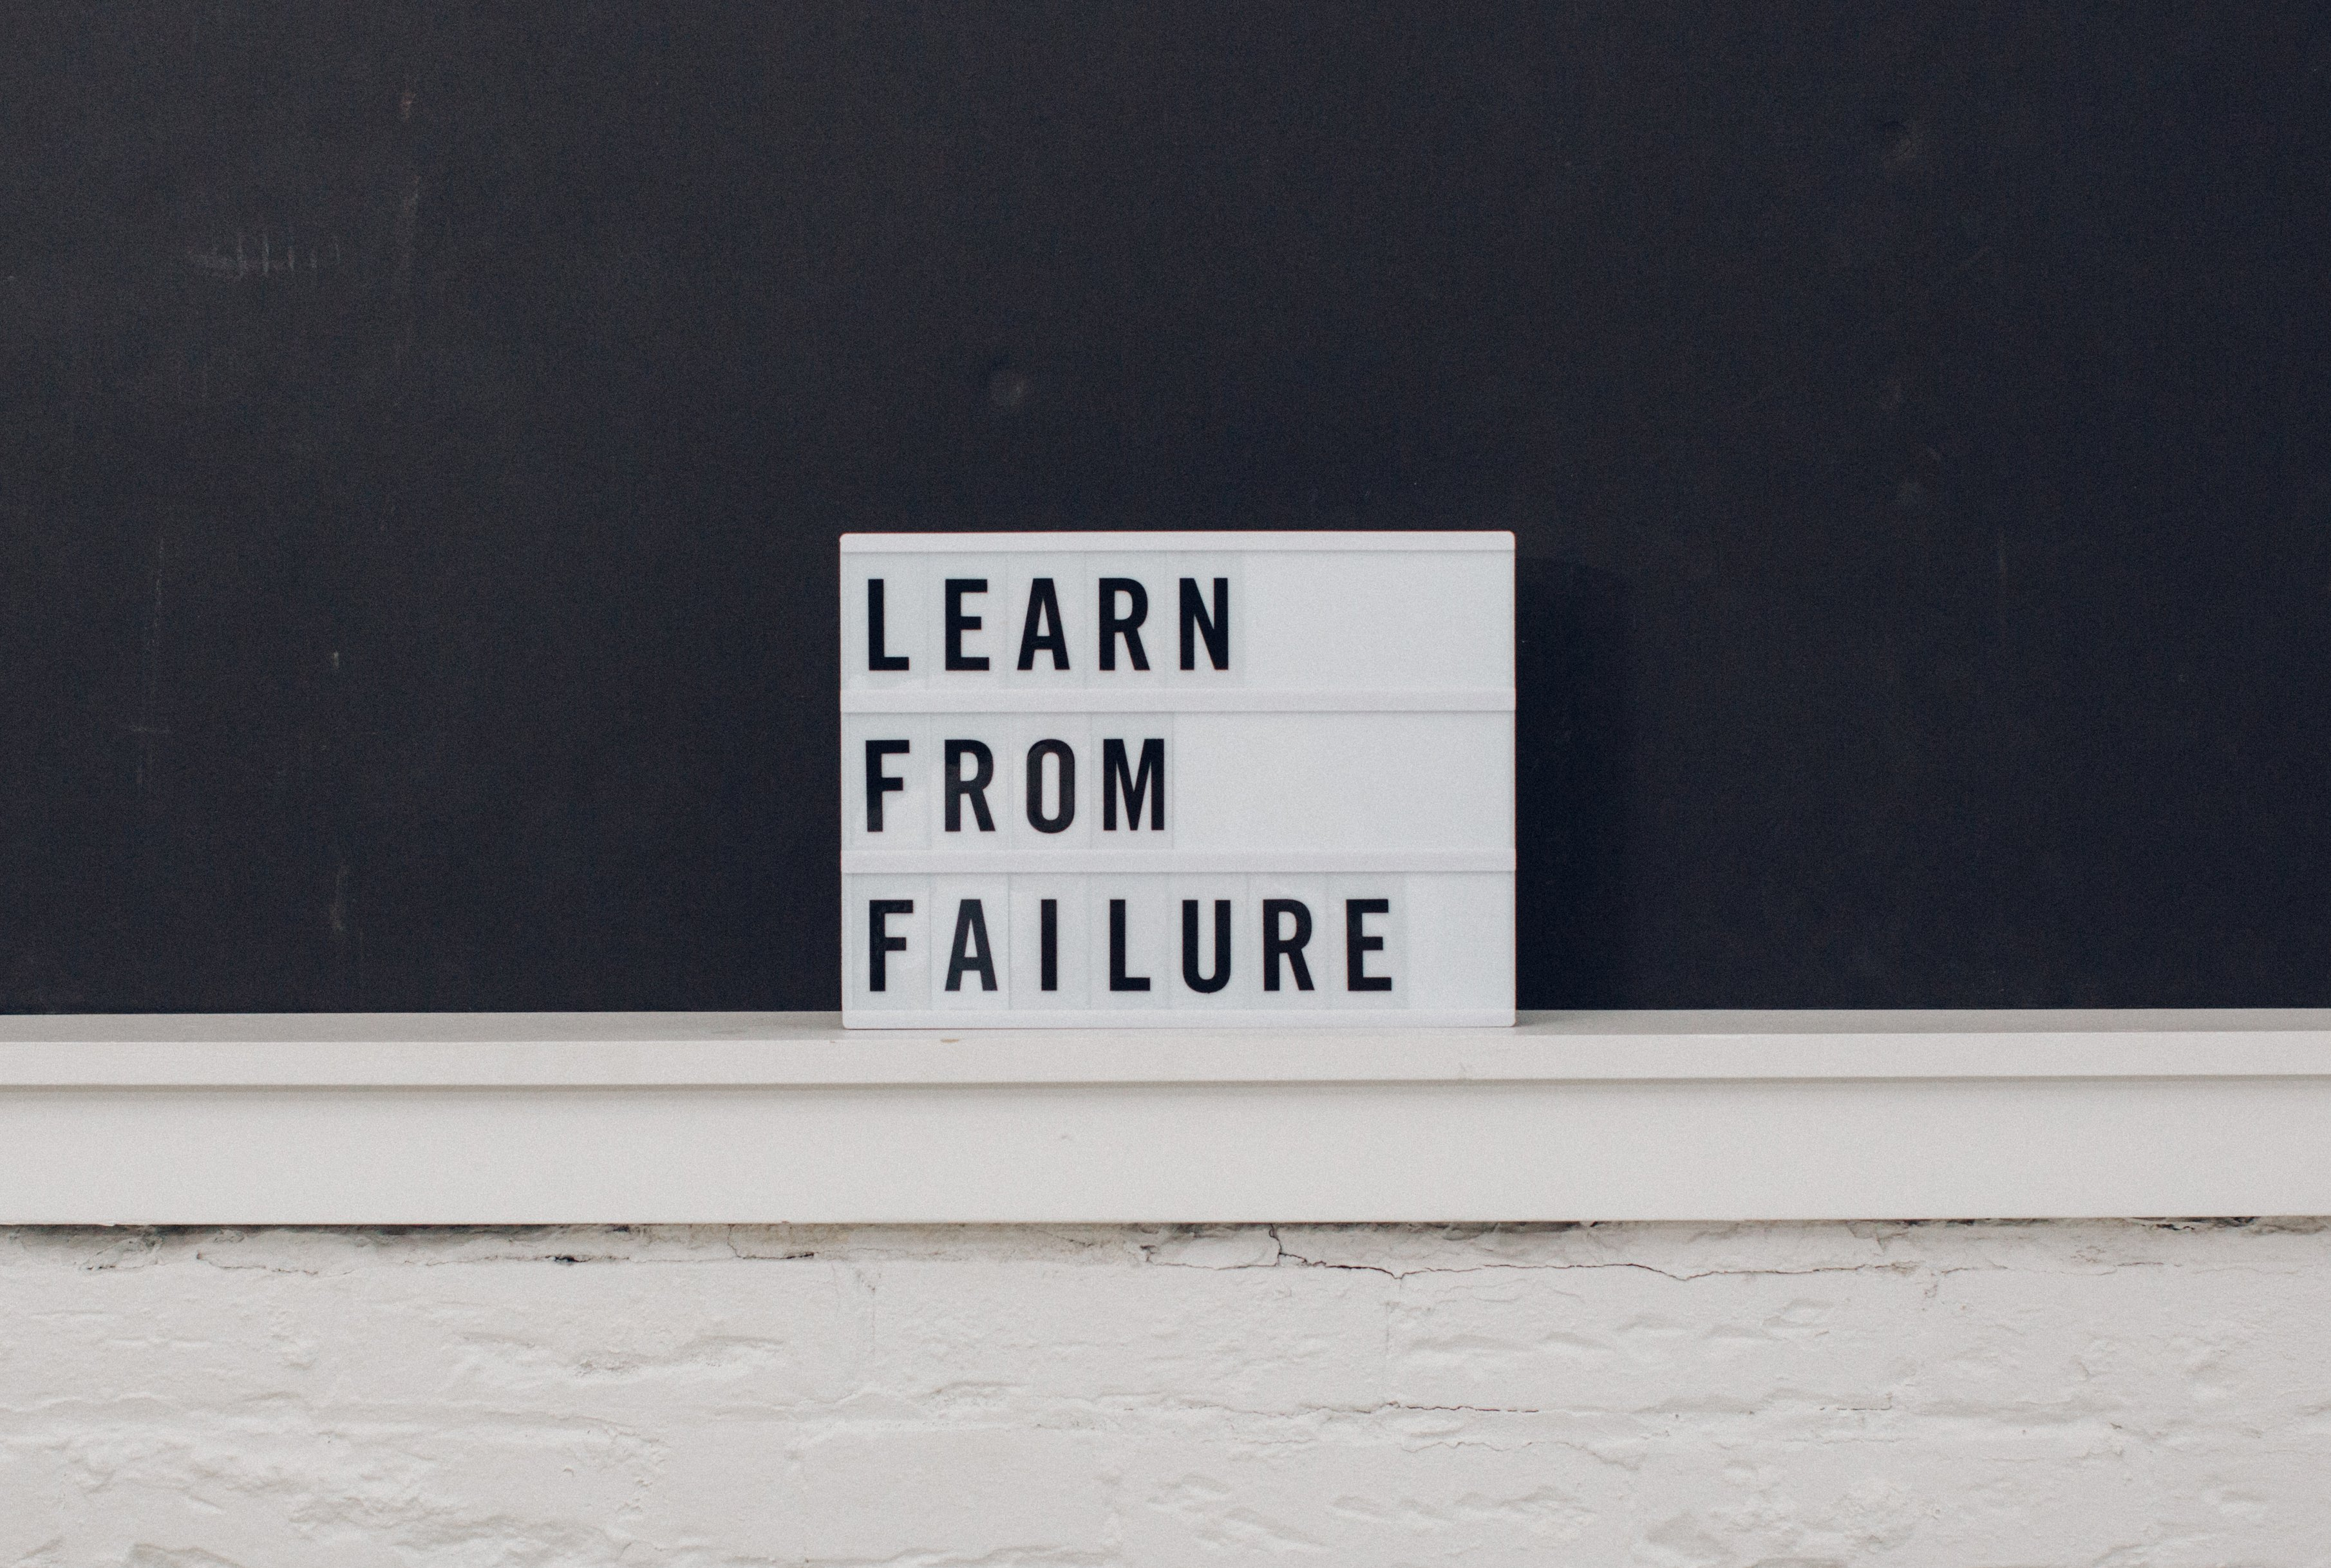 Are failures really failures?